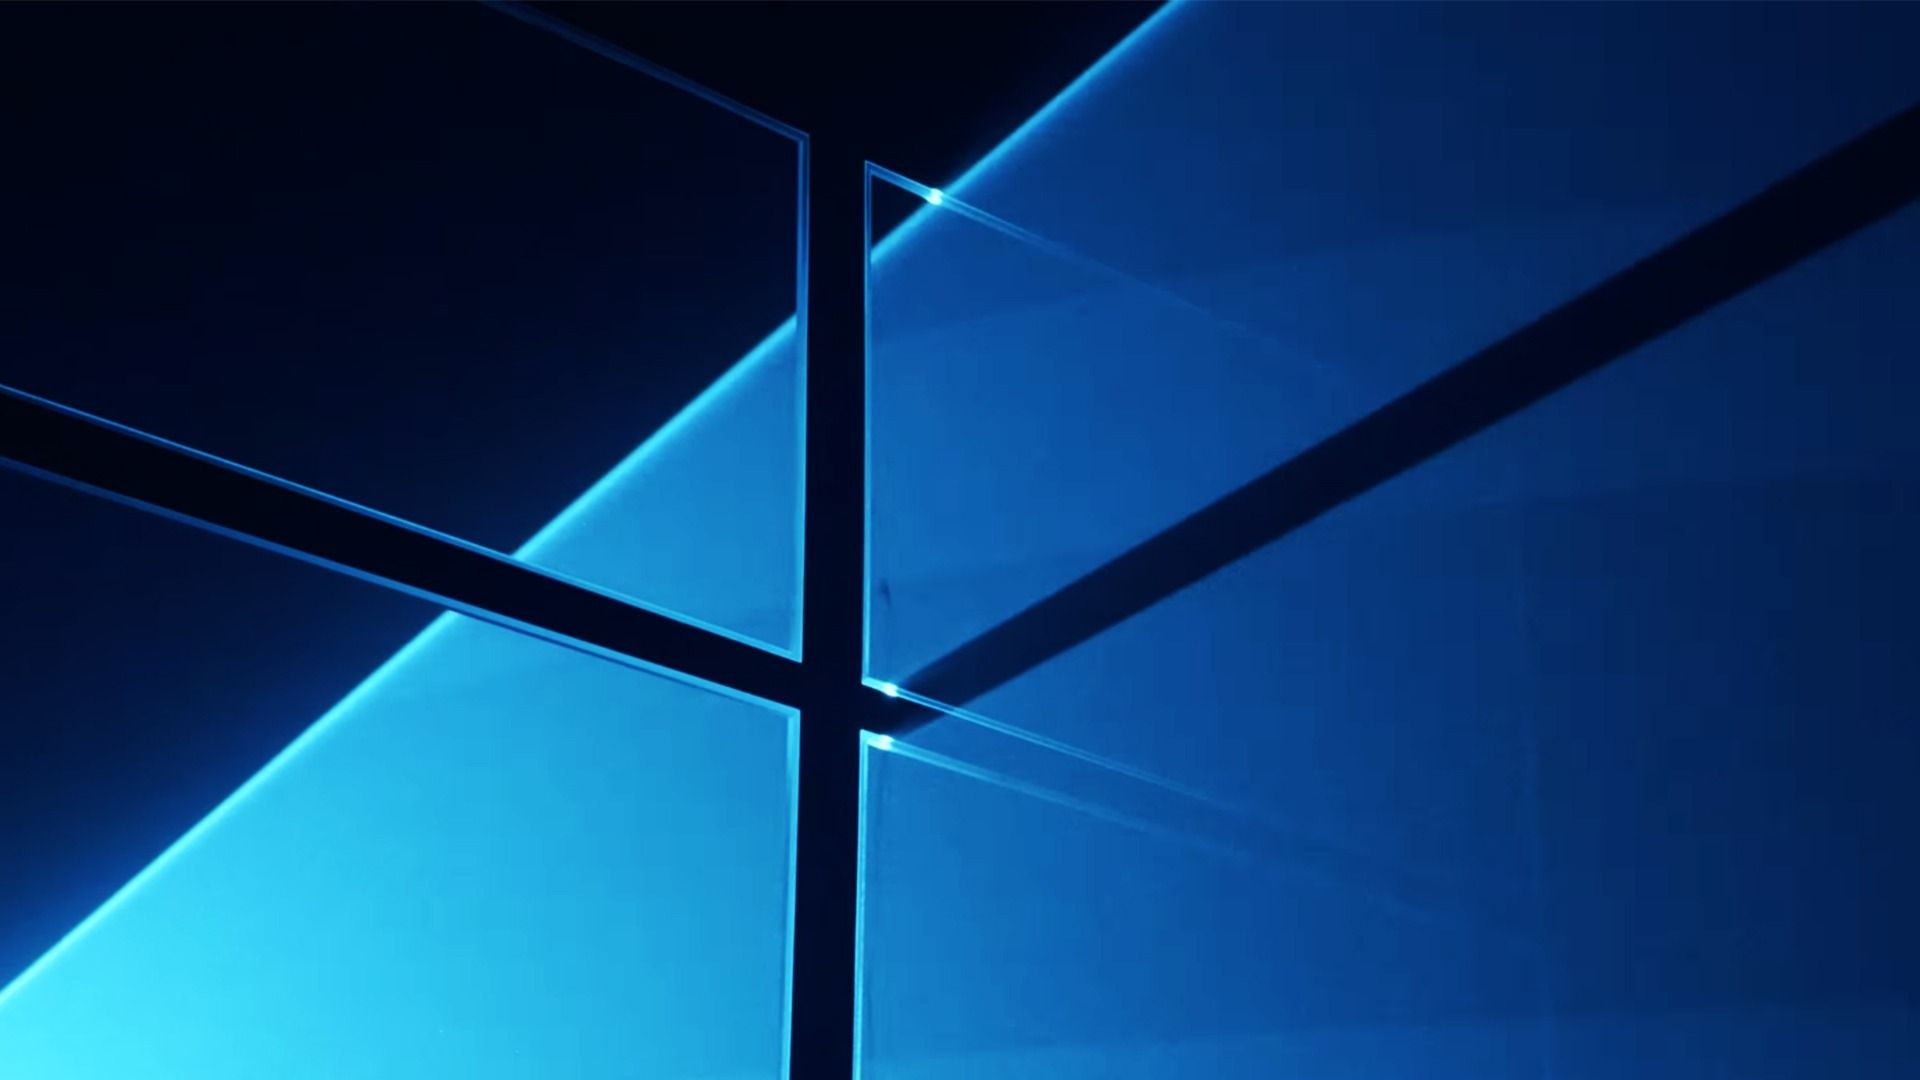 Windows Span computer wallpaper